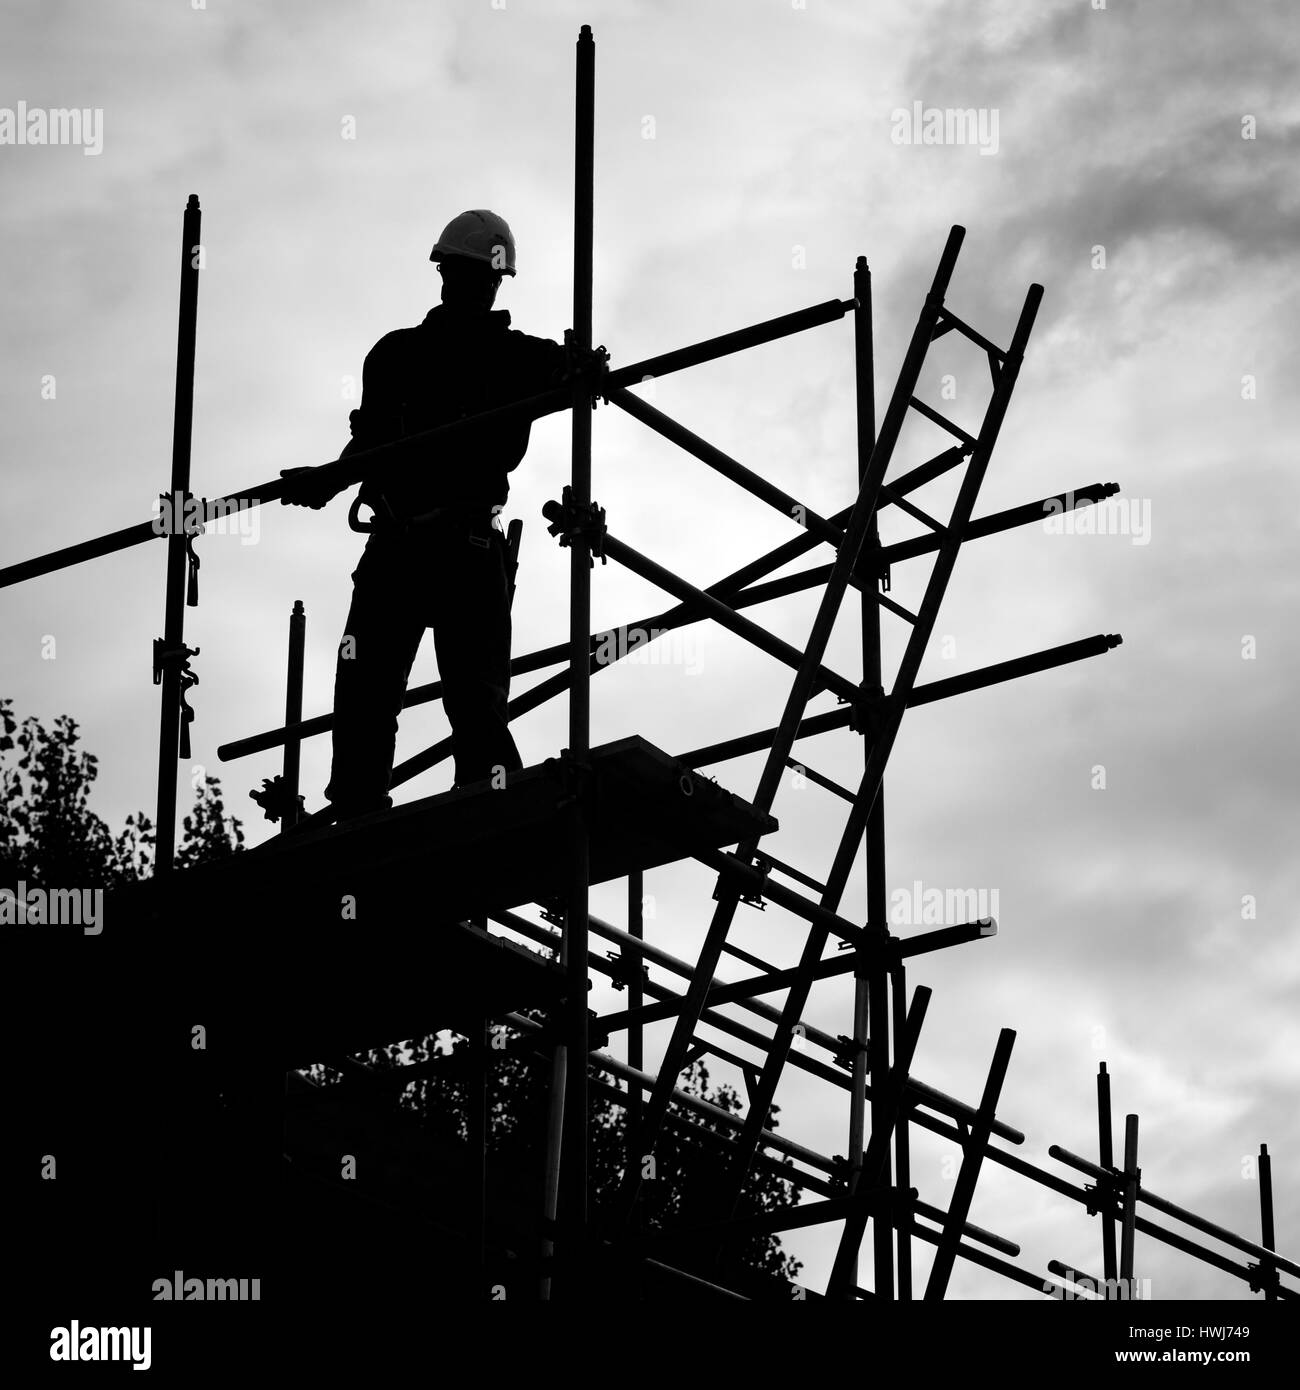 silhouette of construction worker against sky on scaffolding with ladder on building site.Monochrome - Stock Image